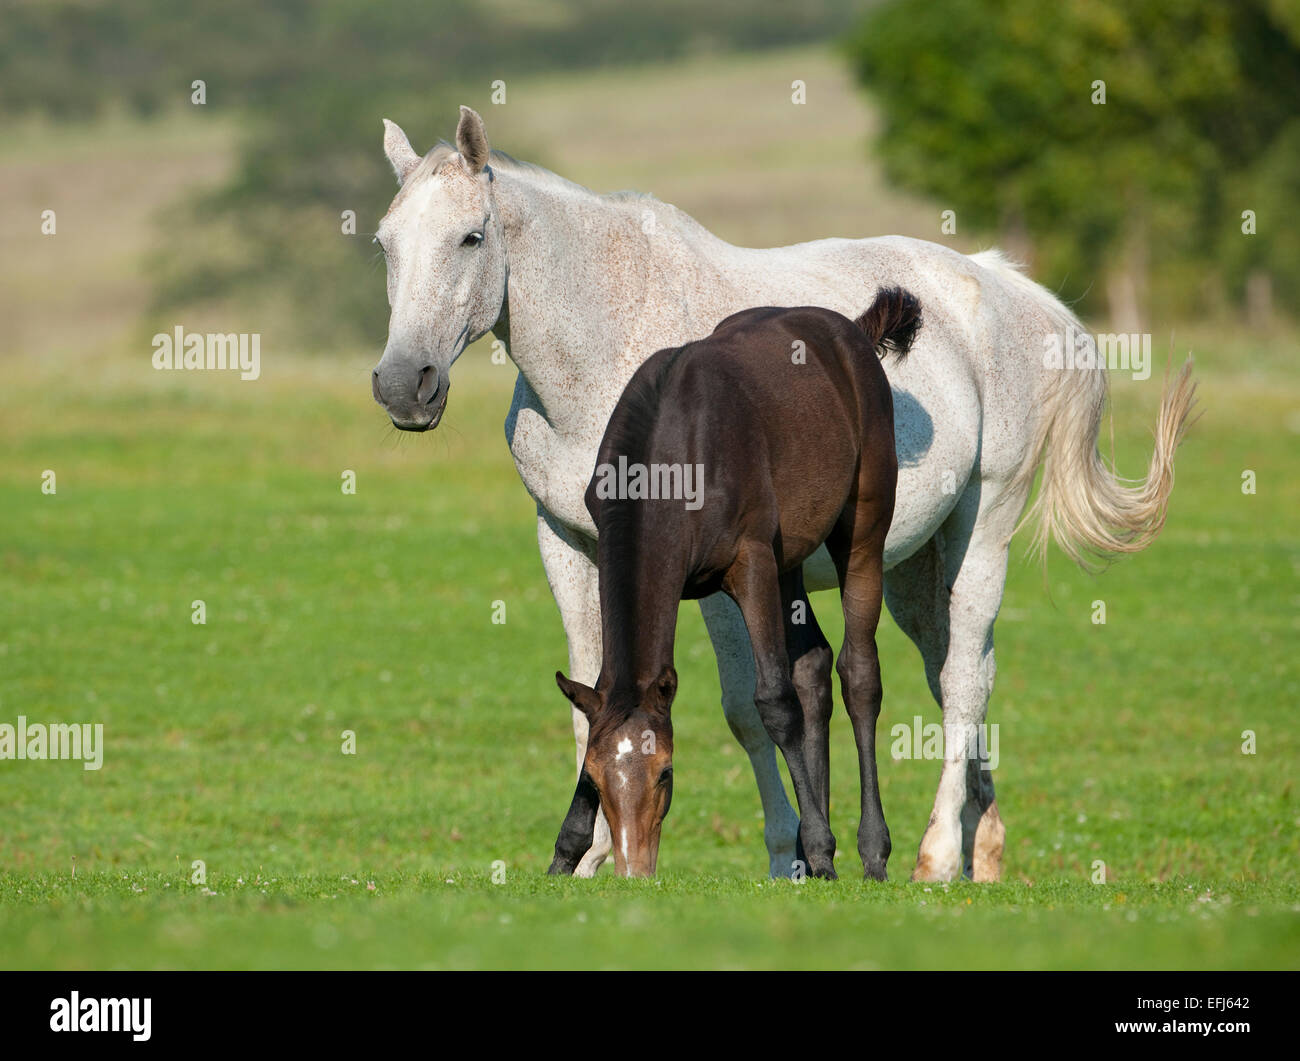 Horses, white mare and a foal with a dark coat, Thuringia, Germany - Stock Image